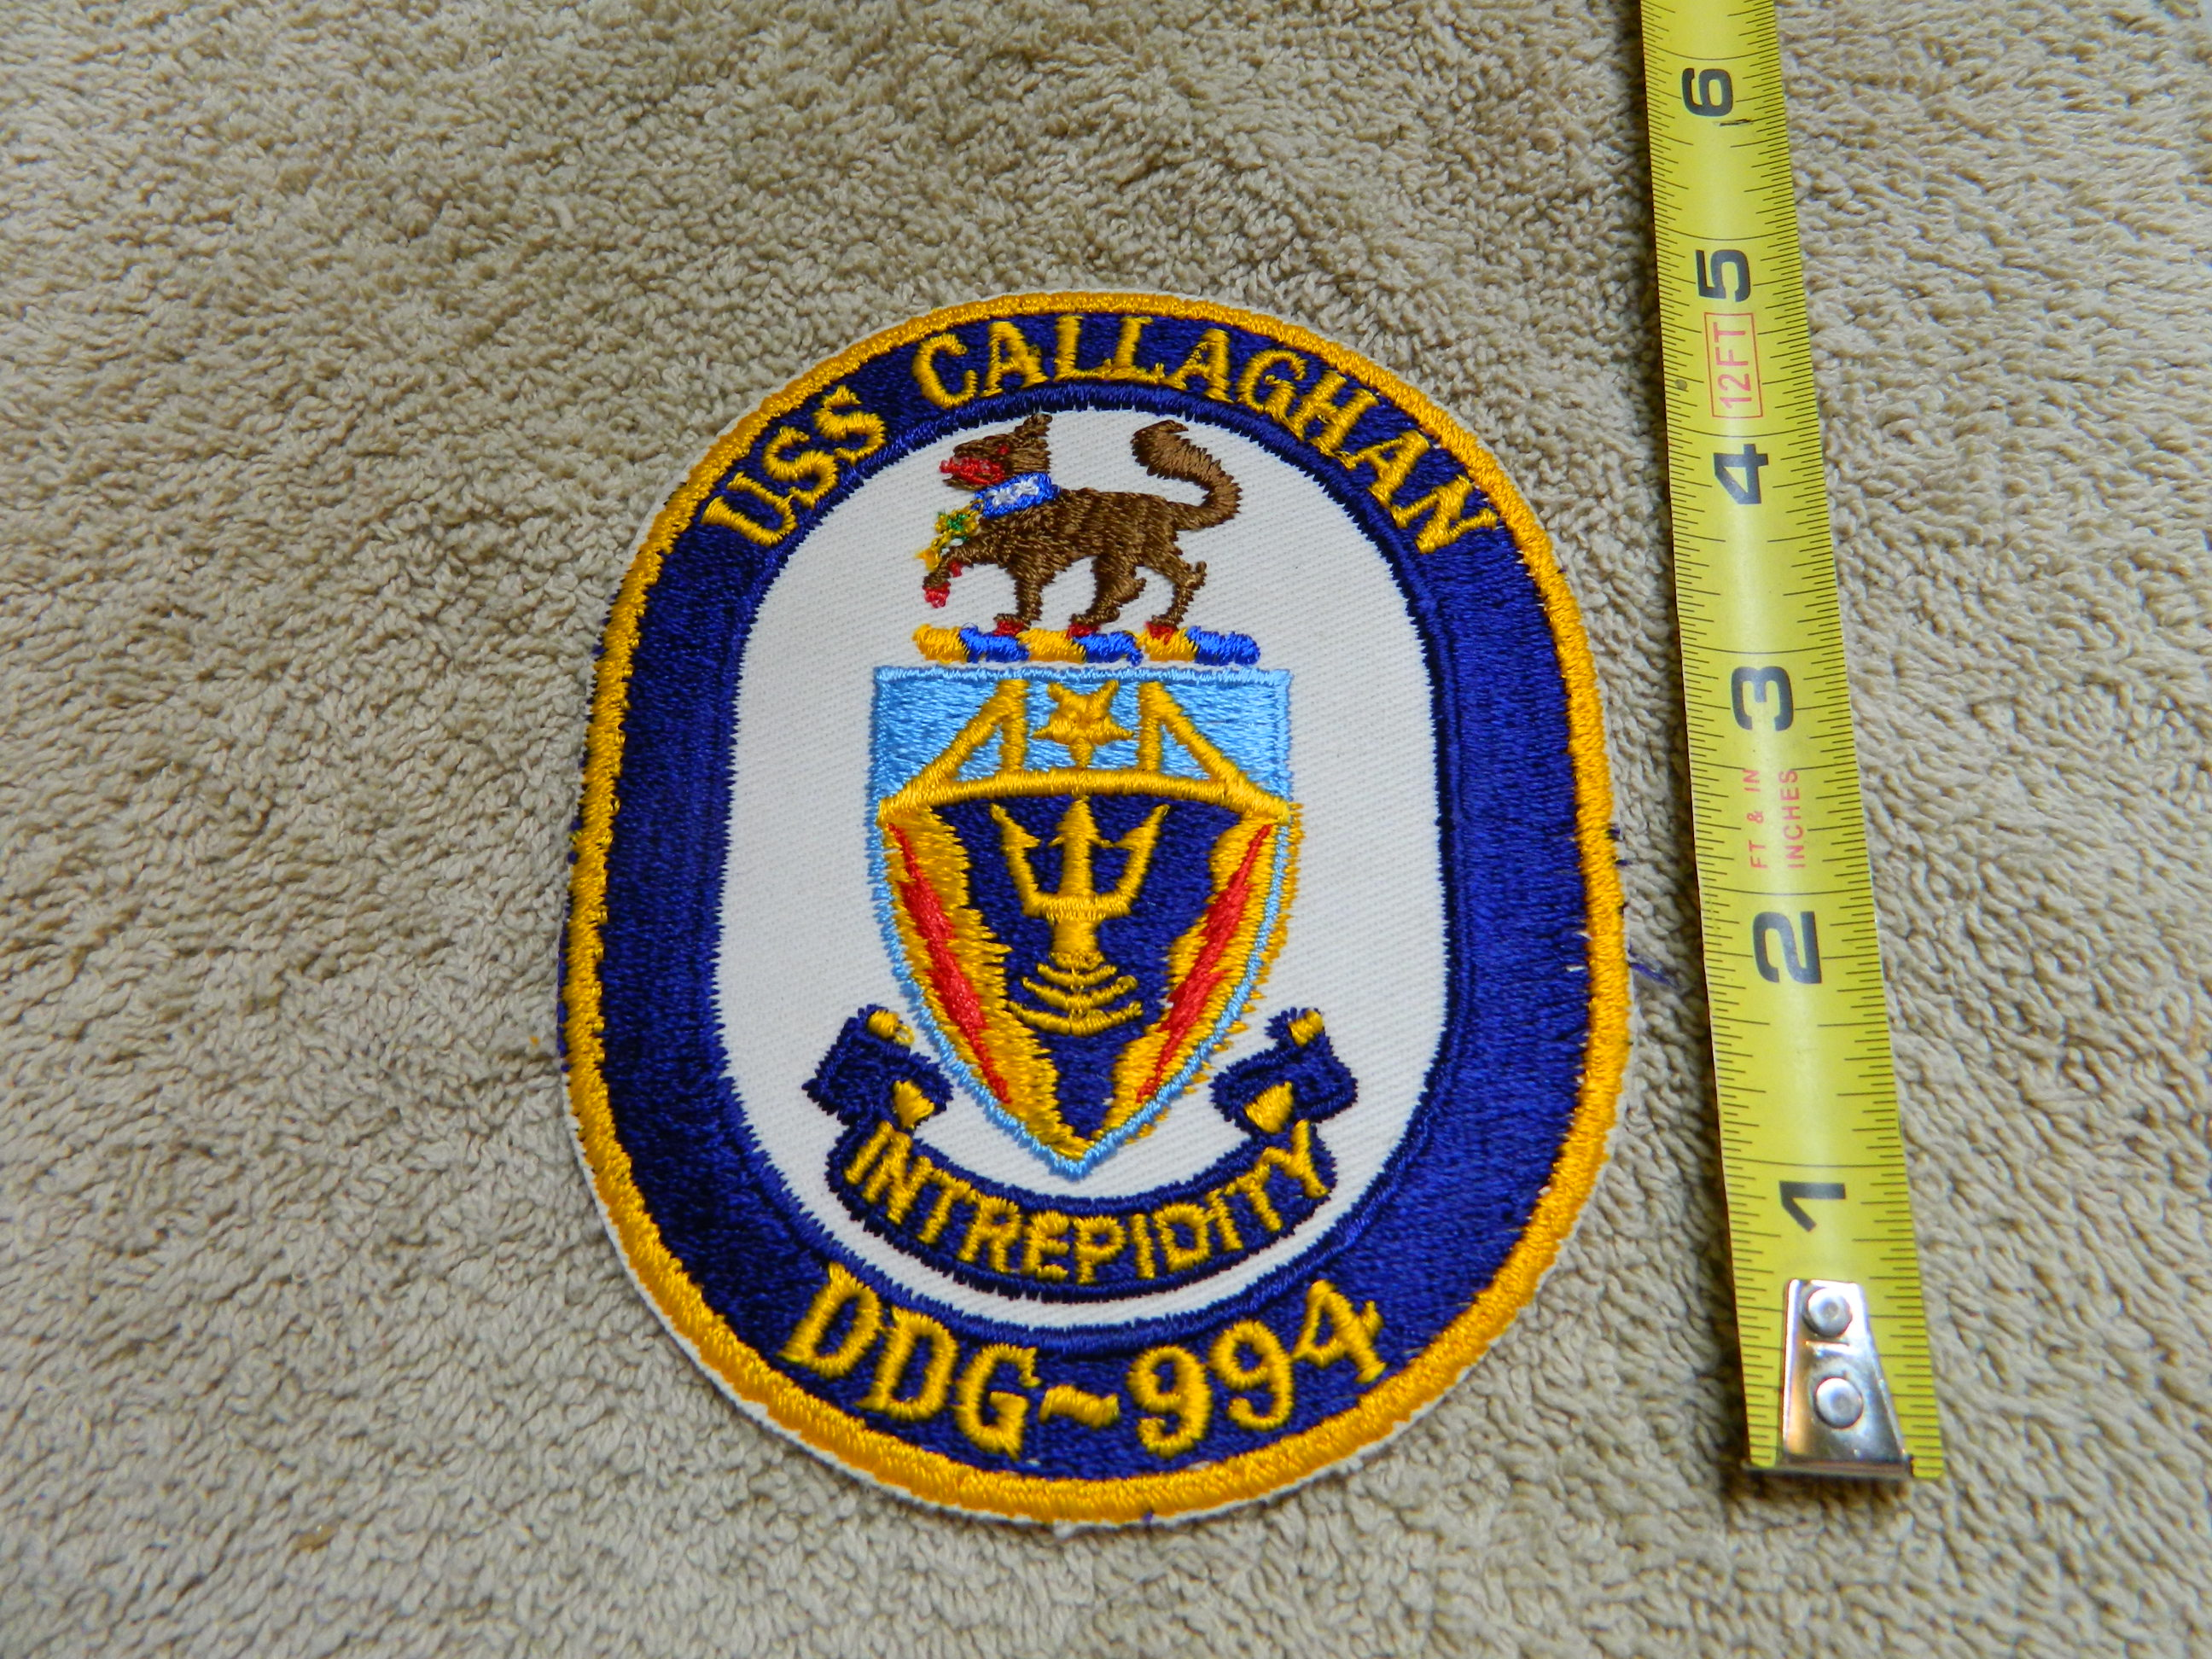 USN: USS CALLAGHAN- DDG-994 Lrg. Color Patch